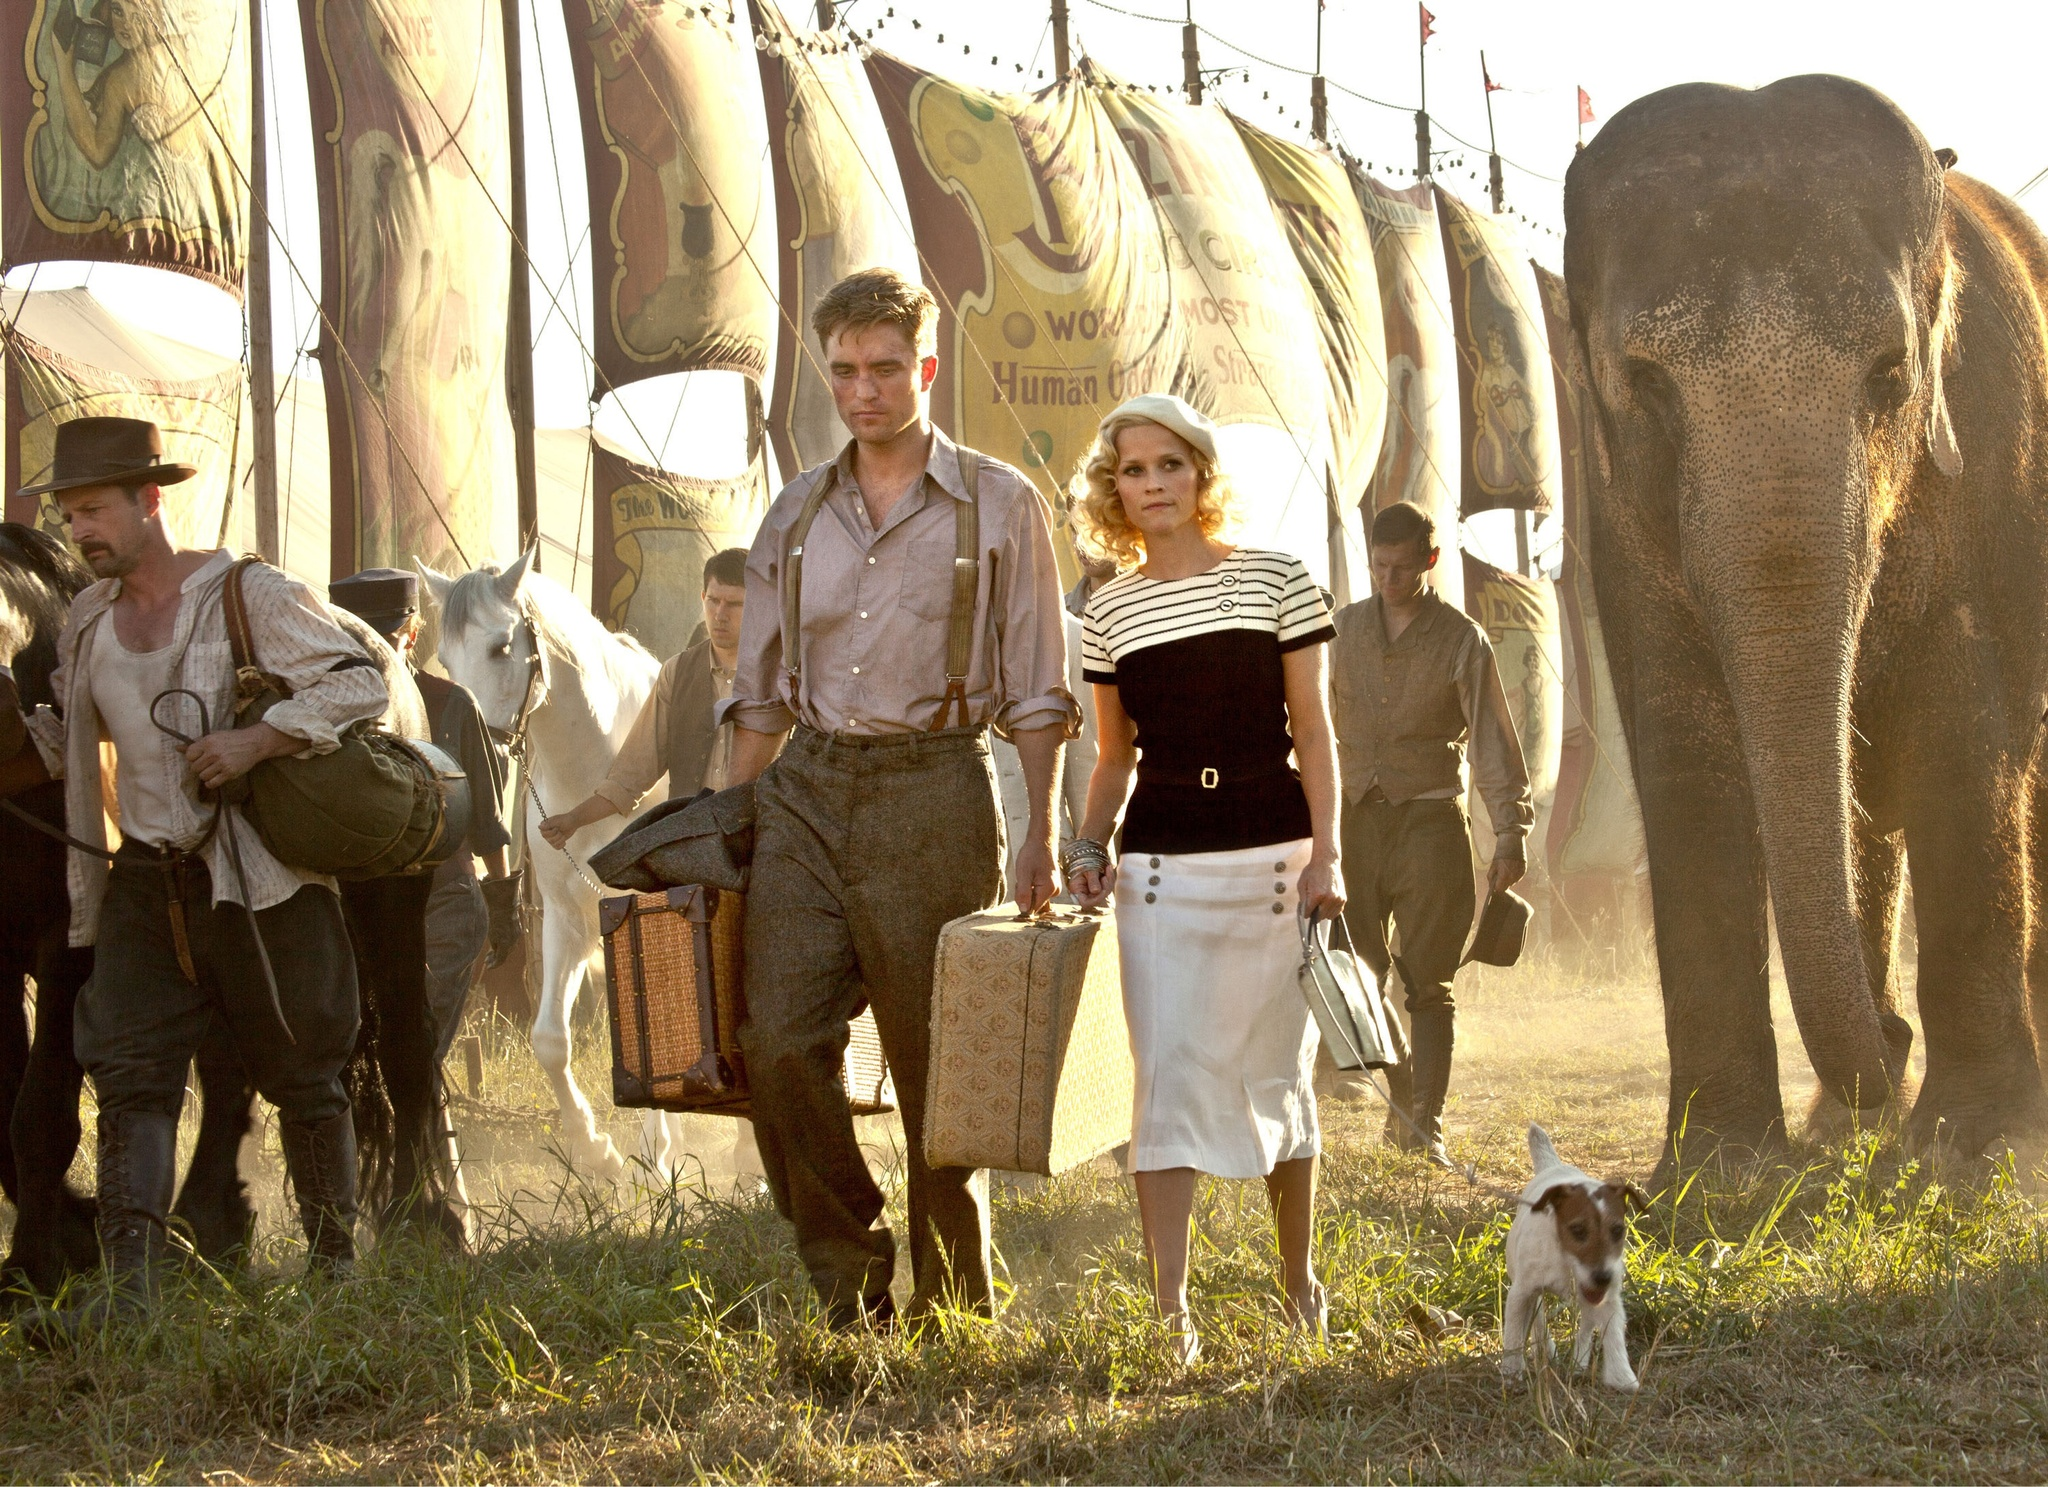 Reese Witherspoon, Tim Guinee, Robert Pattinson, Tai, and Uggie in Water for Elephants (2011)